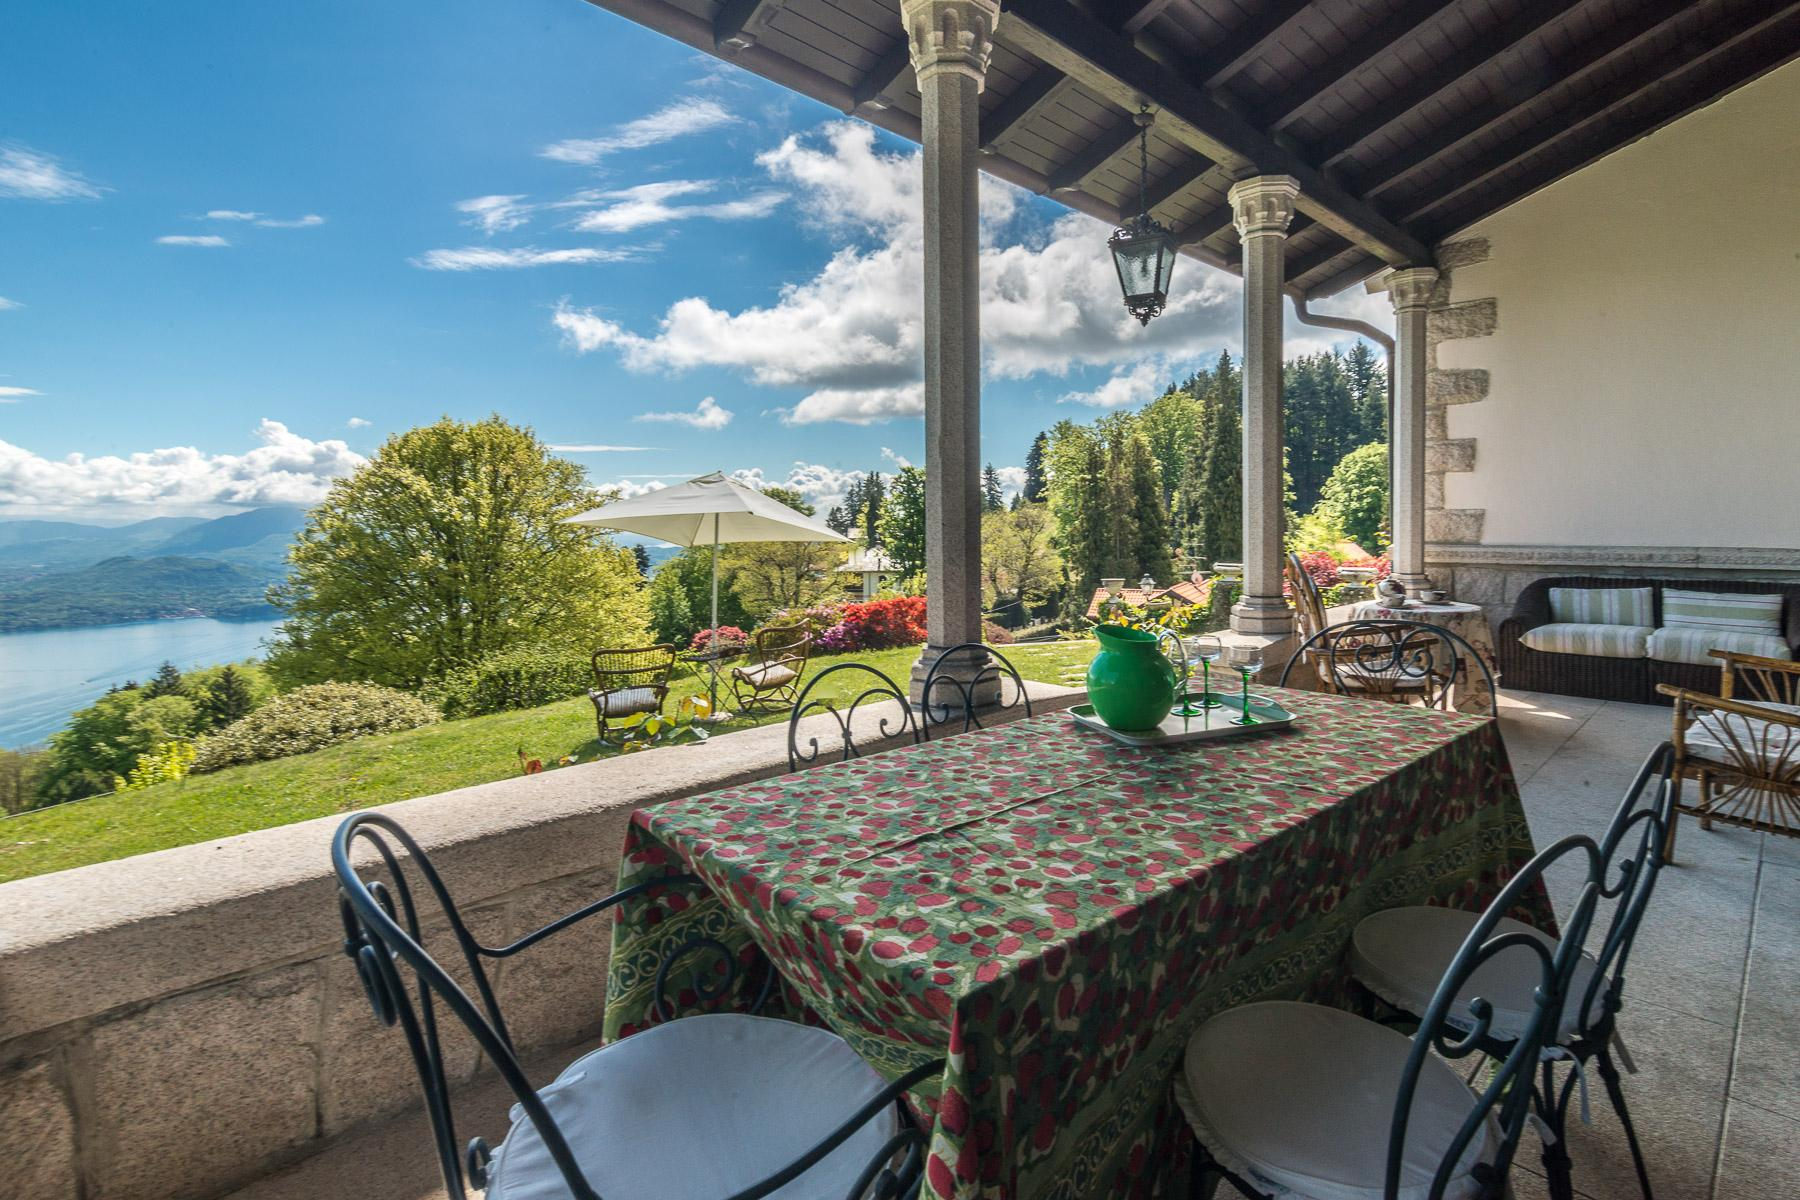 Charming historic villa on the hills of Stresa - 10